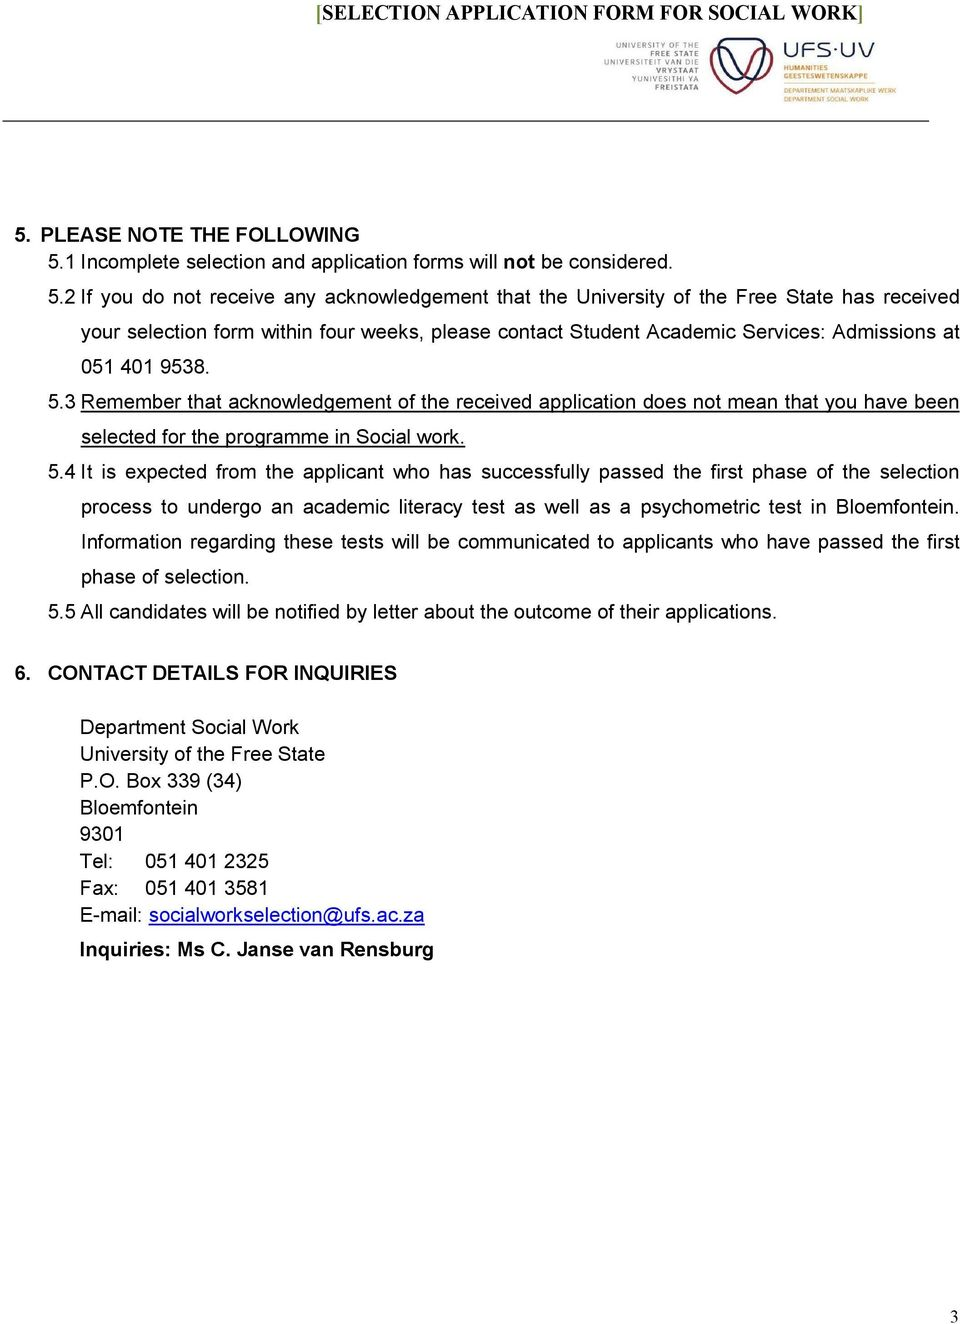 2 If you do not receive any acknowledgement that the University of the Free State has received your selection form within four weeks, please contact Student Academic Services: Admissions at 051 401